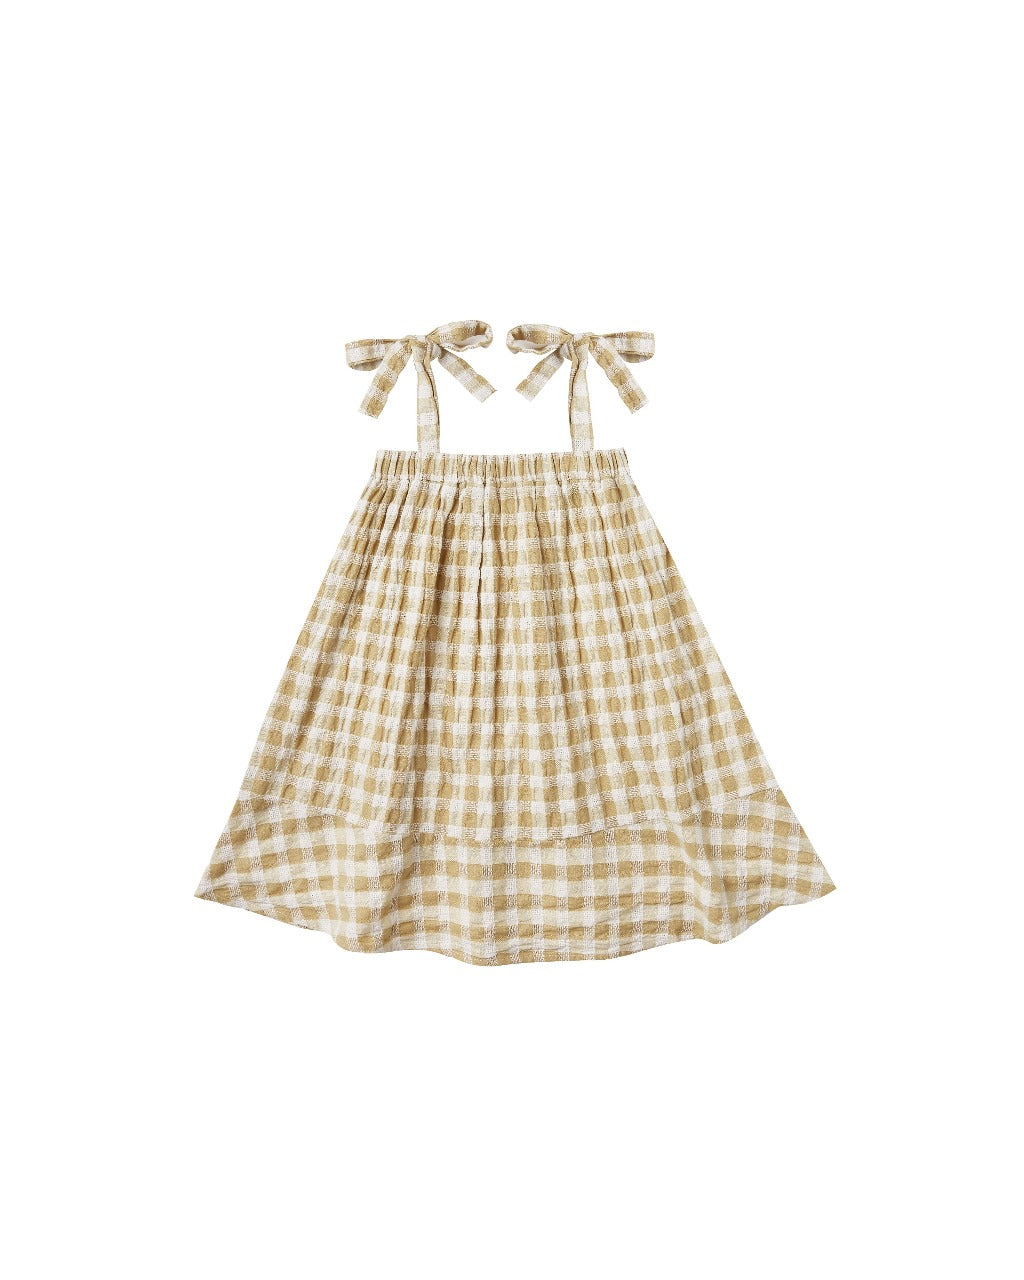 Rylee & Cru Gingham Shoulder Tie Dress in Butter